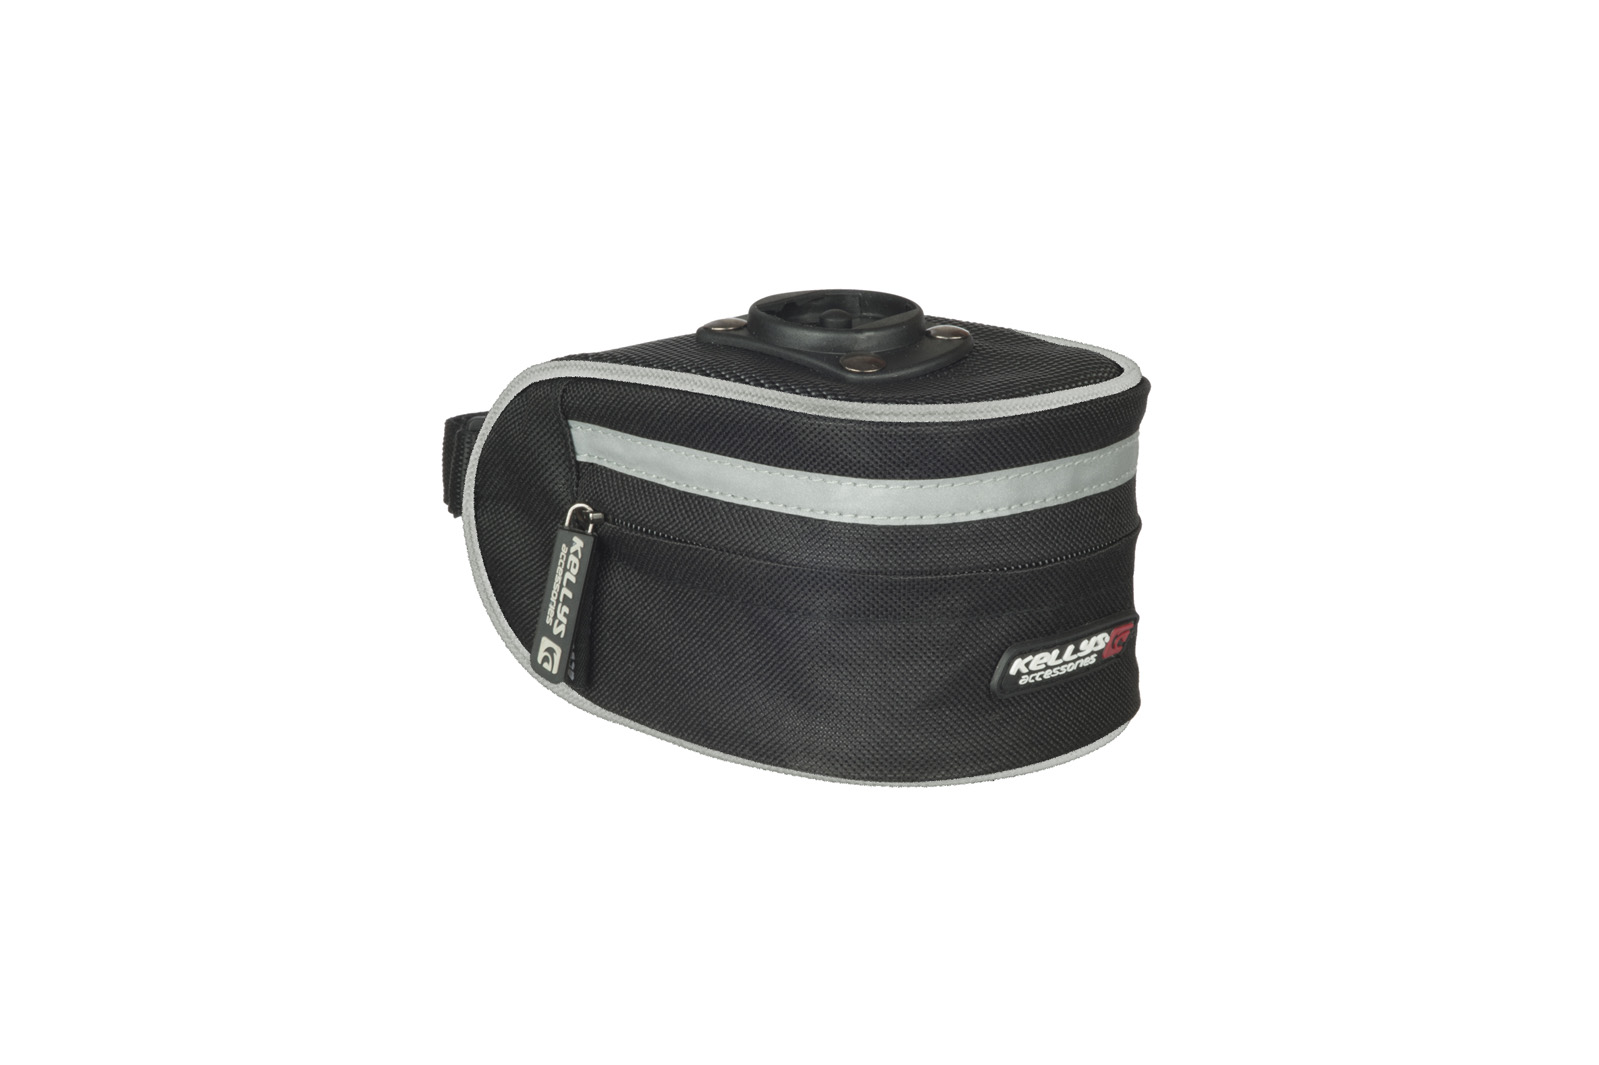 Satteltasche KELLYS HANDY black-grey M - Mile-Multisport